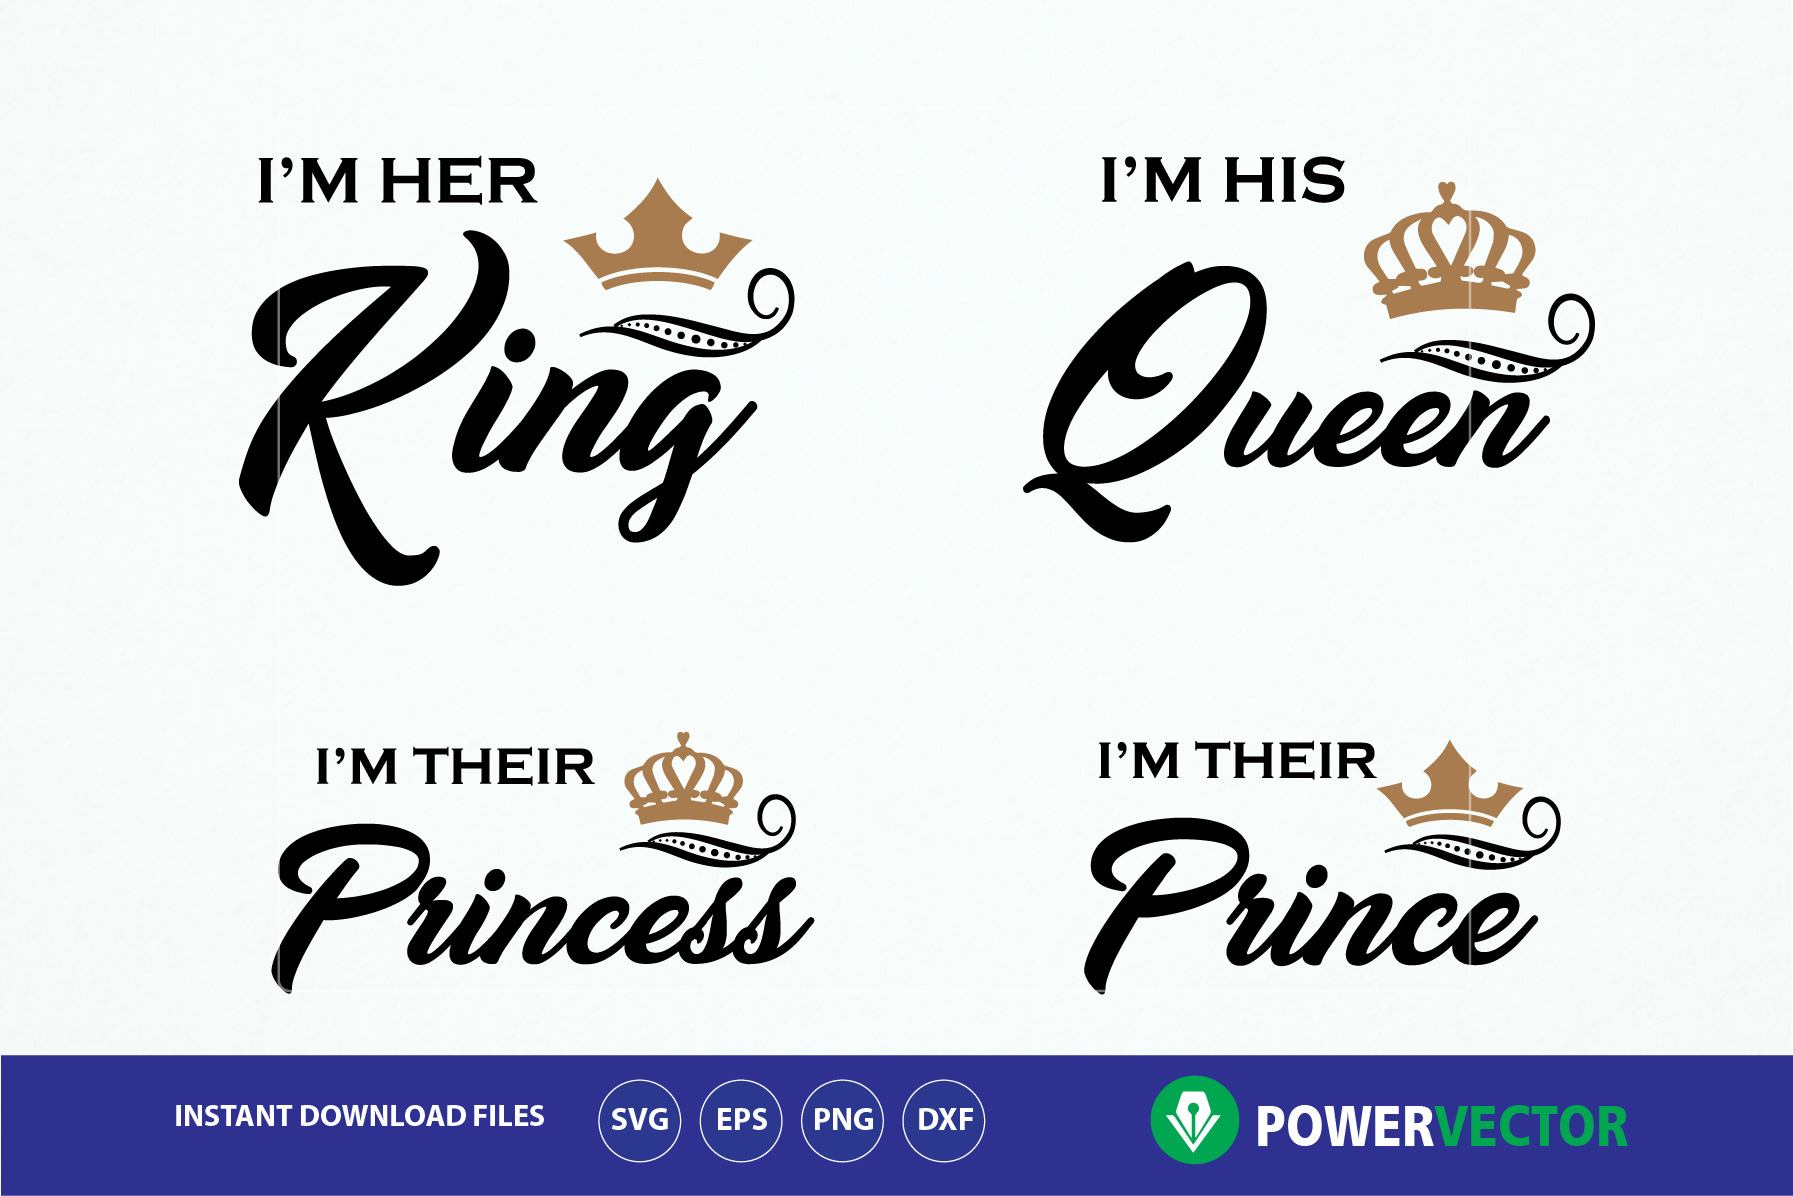 King Queen Princess Prince T shirts SVG Cuttable Design. Royal Family Shirt Vinyl Cut File - Svg Dxf Png. Crowns Svg T shirt Iron on File example image 1